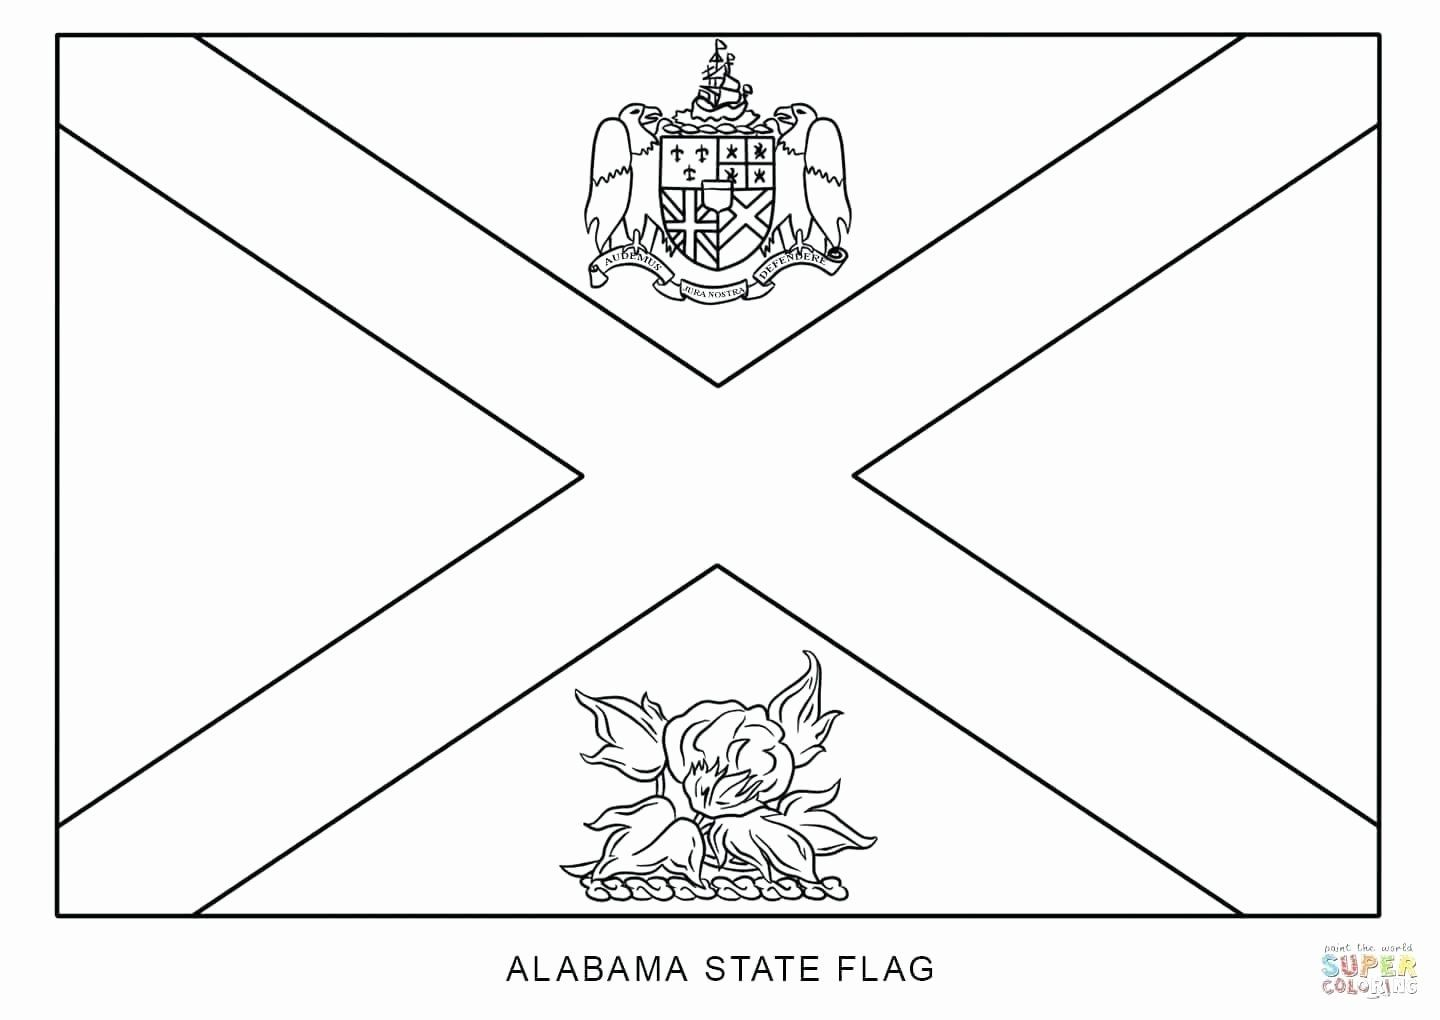 Us Map Coloring Page Online Inspirational States Flags Coloring Pages Codeadventures Flag Coloring Pages Coloring Pages State Flags